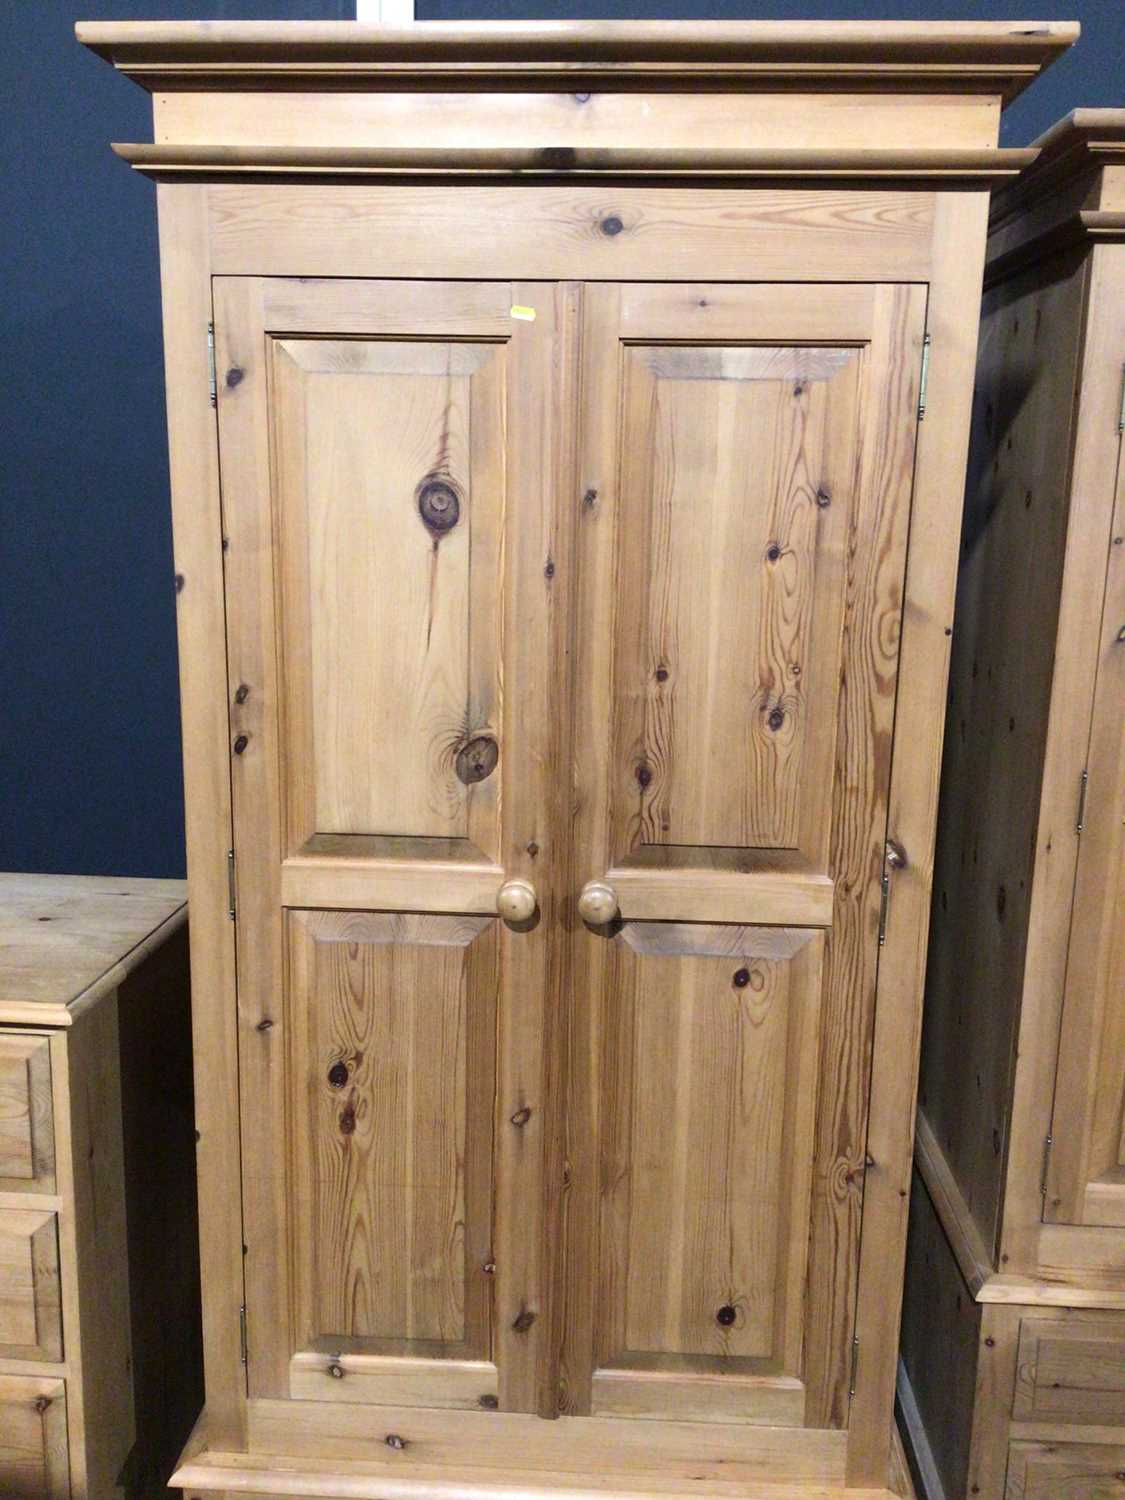 Modern pine double wardrobe with two panelled doors and drawer below, 97.5cm wide x 63cm deep x 208. - Image 2 of 14